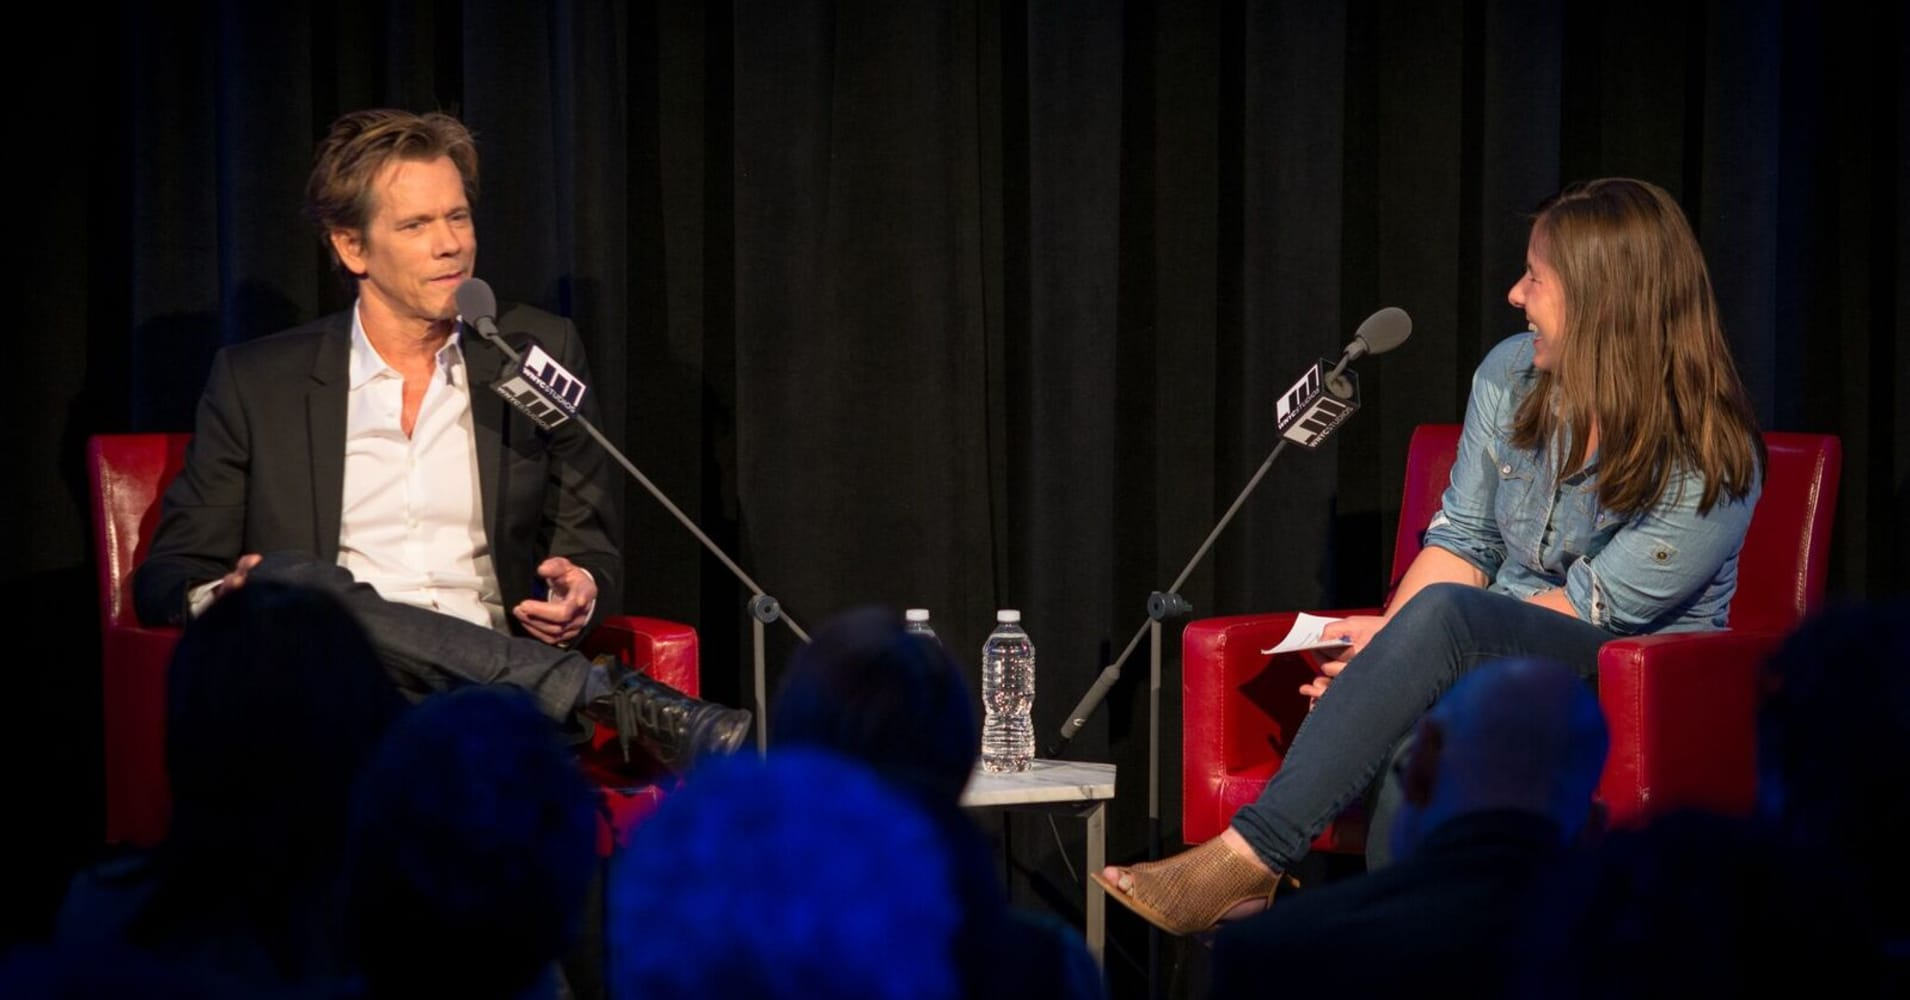 Kevin Bacon speaks with Anna Sale. Photo by Janice Yi for WNYC.